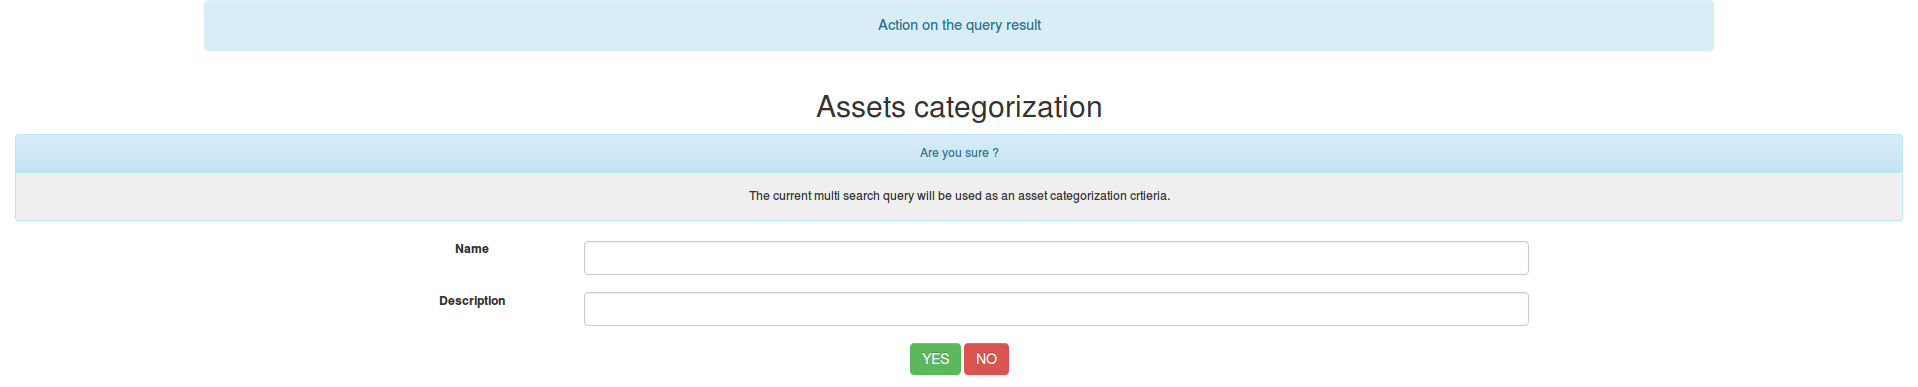 Assets categories form